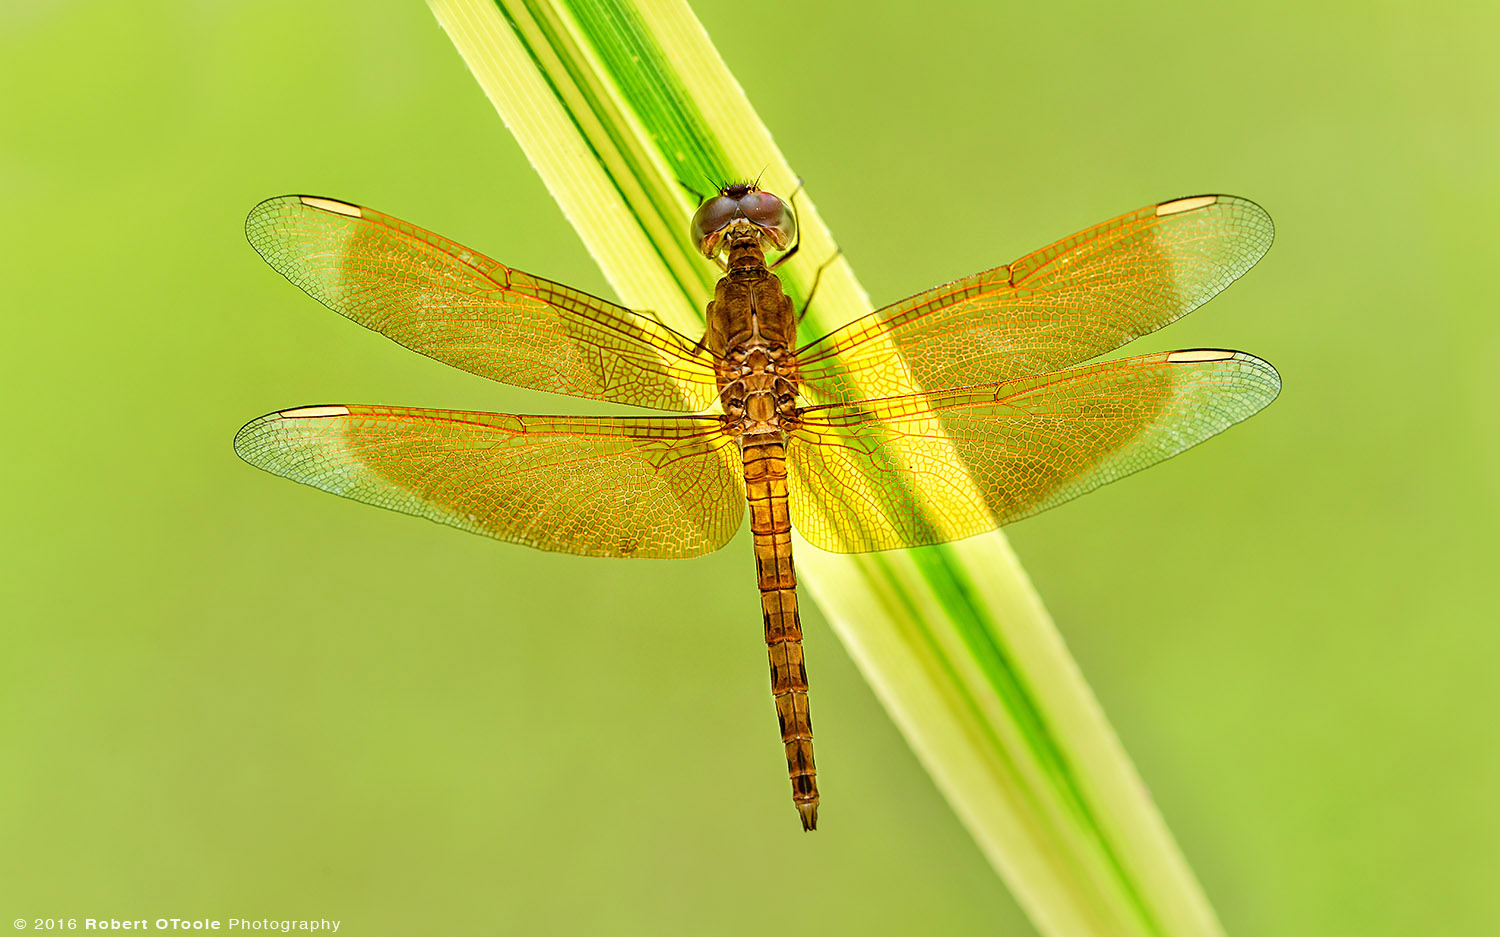 Common Parasol Dragonfly Resting on Leaf in Asia